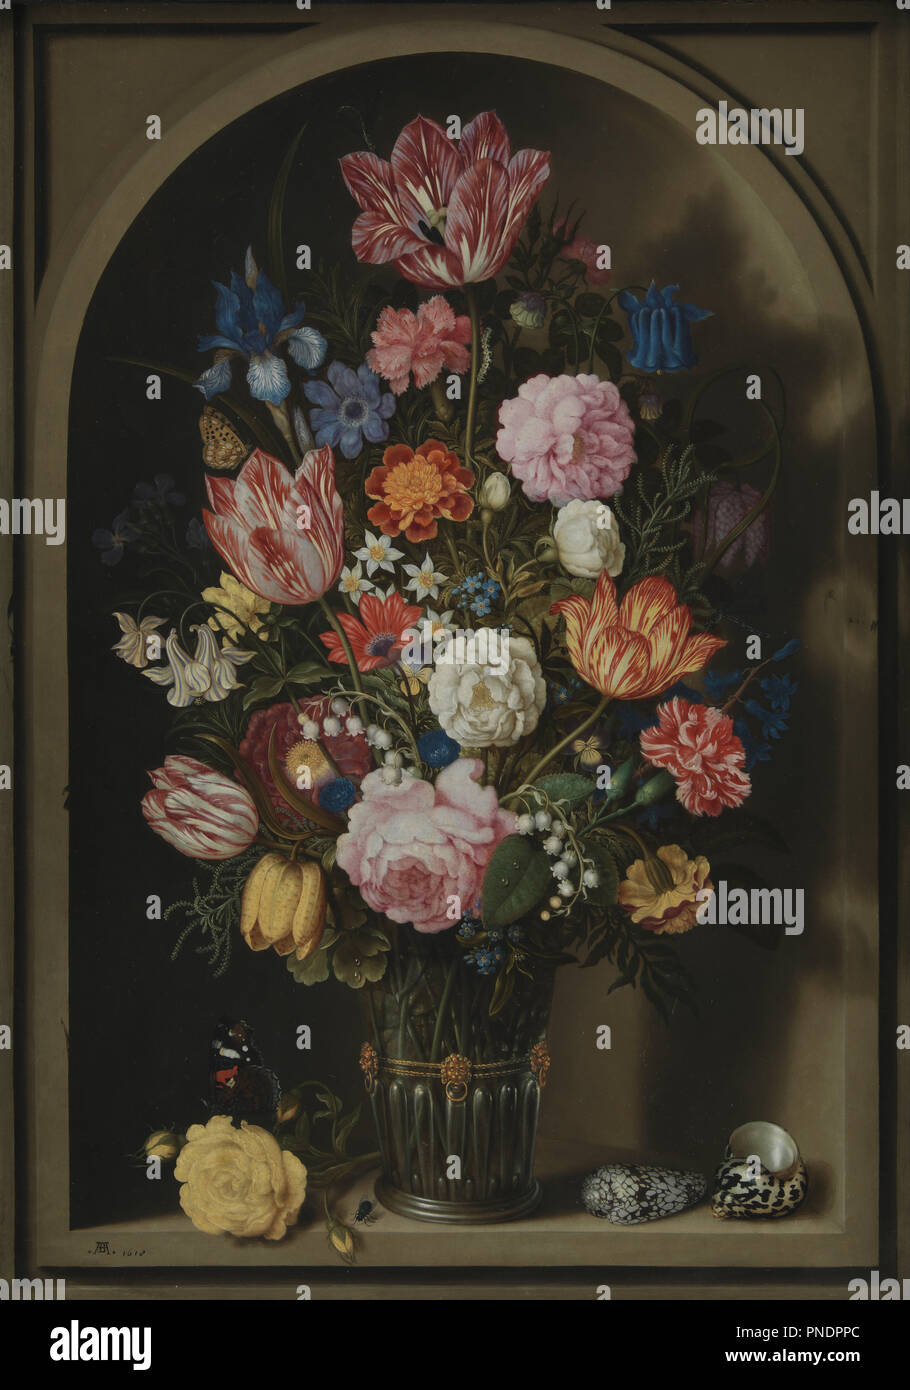 Bouquet of Flowers in a Stone Niche. Date/Period: 1618. Painting. Oil on copper. Height: 555 mm (21.85 in); Width: 395 mm (15.55 in). Author: Ambrosius Bosschaerts the Elder. Bosschaert, Ambrosius, the Elder. - Stock Image